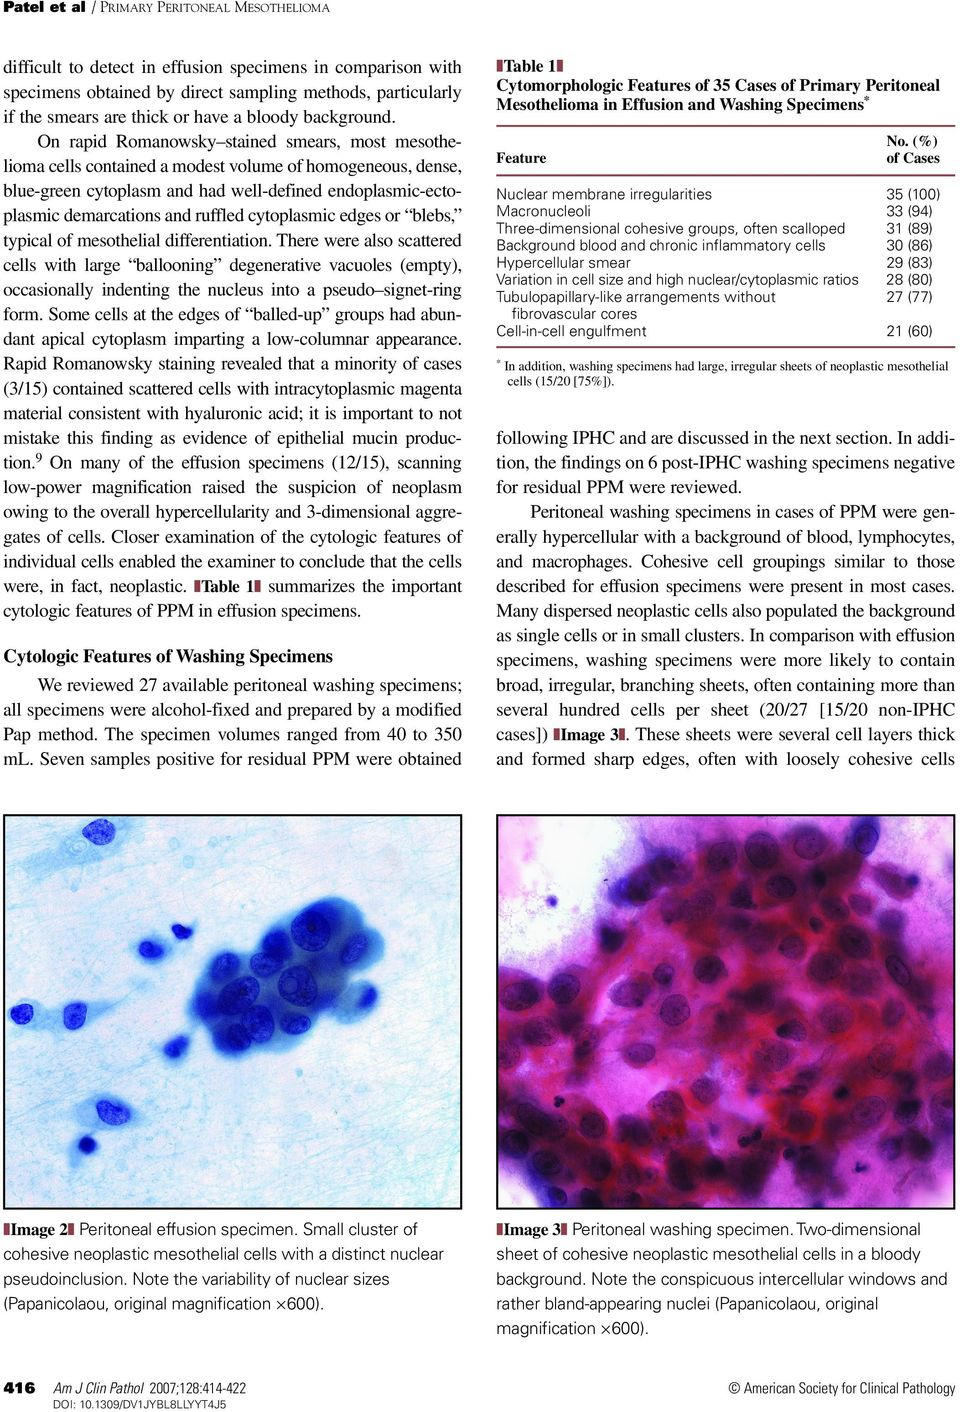 On rapid Romanowsky stained smears, most mesothelioma cells contained a modest volume of homogeneous, dense, blue-green cytoplasm and had well-defined endoplasmic-ectoplasmic demarcations and ruffled